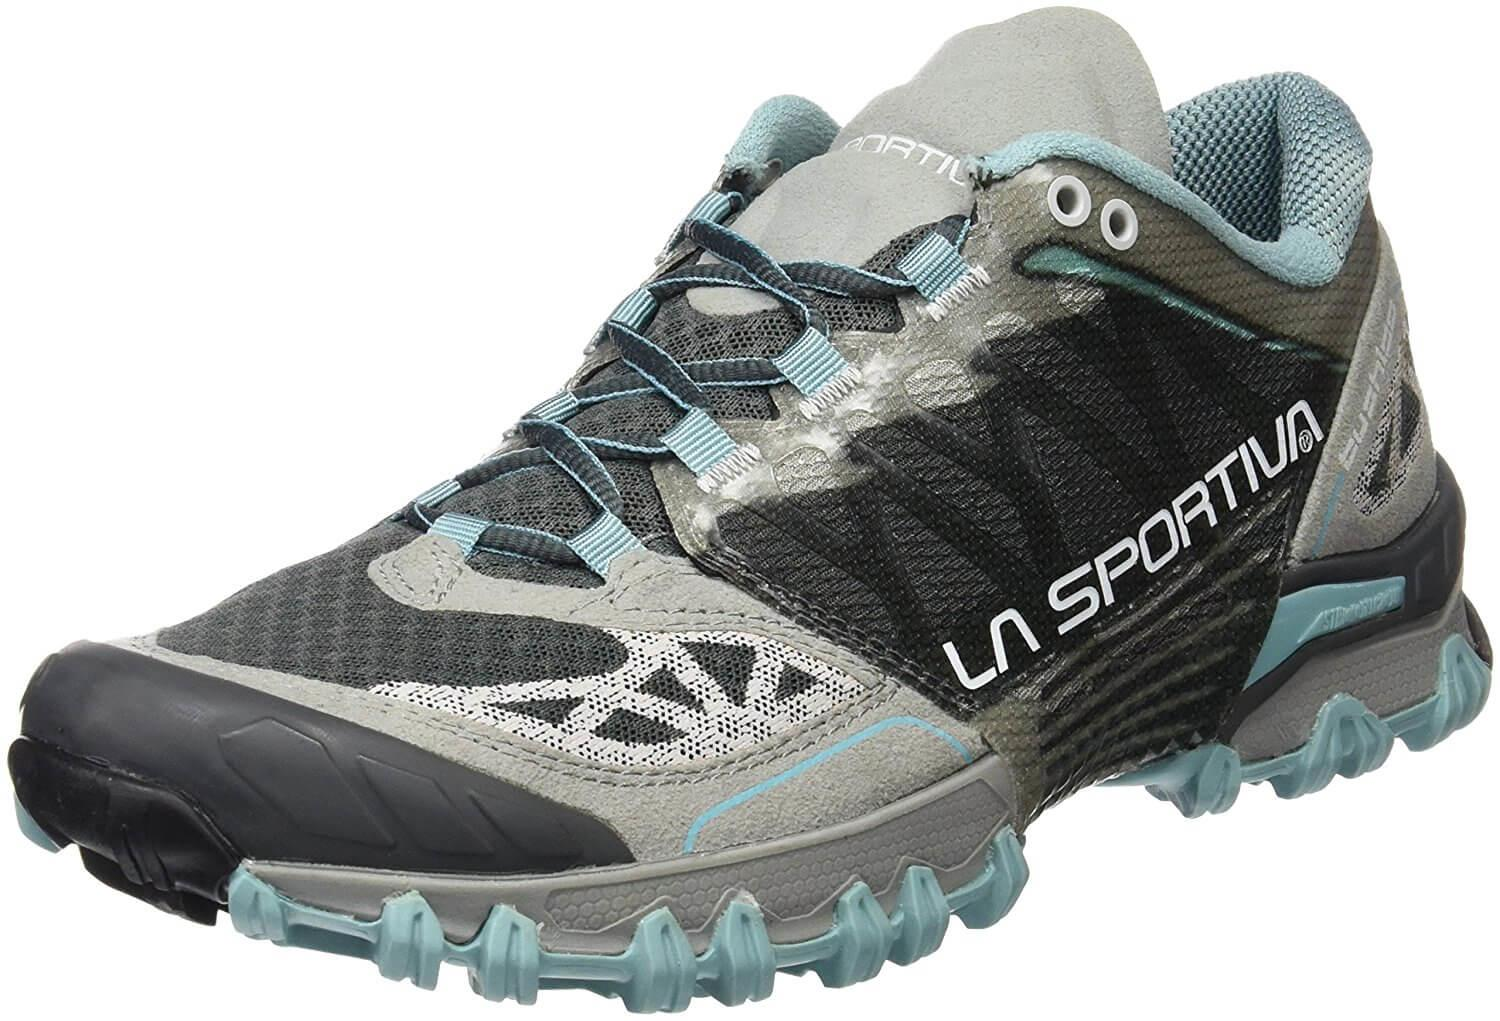 a8bffef3828 the La Sportiva Bushido is a dynamic stability trail shoe ...